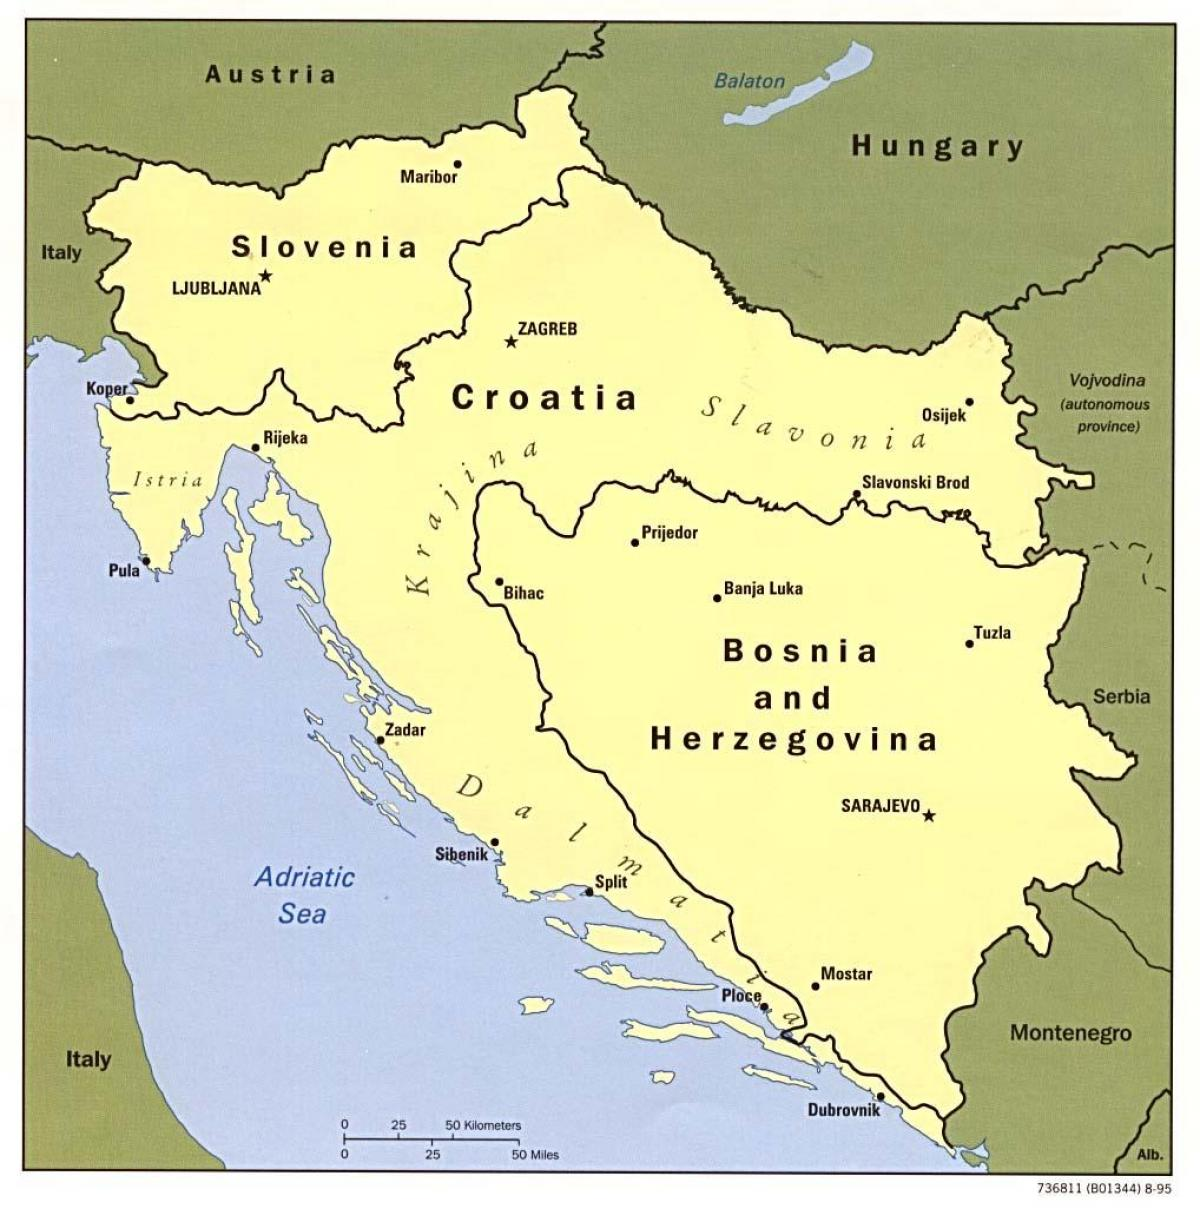 map of Bosnia and Herzegovina and surrounding countries